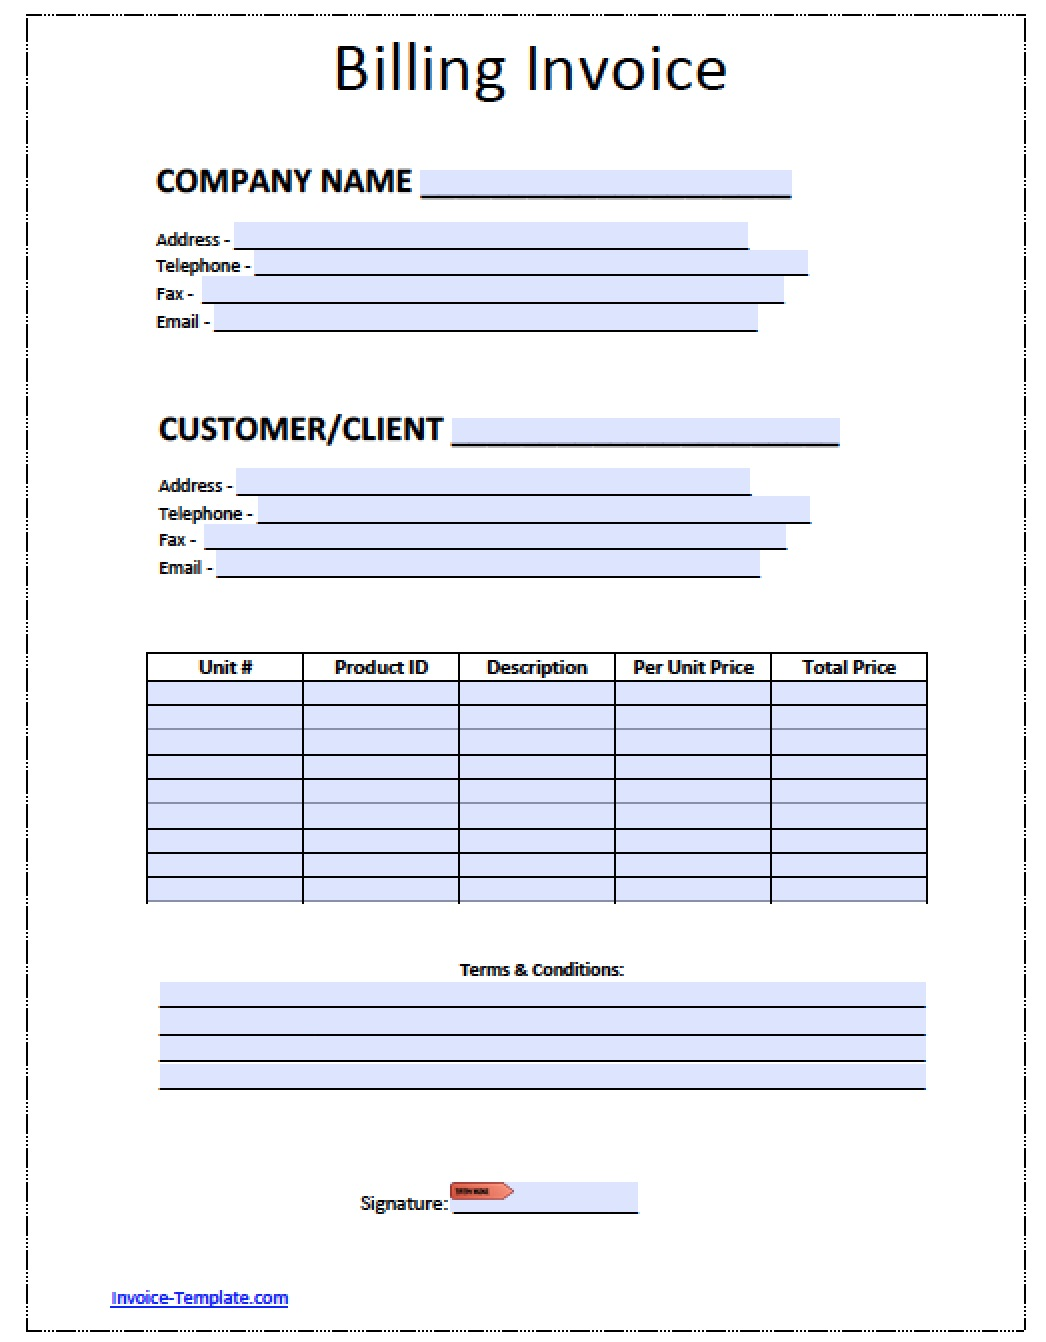 Reliefworkersus  Surprising Billing Invoice Invoices Faq U Cloudflare Support Billing  With Exciting Free Billing Invoice Template  Excel  Pdf  Word Doc  Billing With Lovely Invoice Pages Template Also Cif Invoice In Addition Goods Invoice And Snappy Invoice As Well As Proforma Invoice Xls Additionally What Does Invoice From Happytomco With Reliefworkersus  Exciting Billing Invoice Invoices Faq U Cloudflare Support Billing  With Lovely Free Billing Invoice Template  Excel  Pdf  Word Doc  Billing And Surprising Invoice Pages Template Also Cif Invoice In Addition Goods Invoice From Happytomco